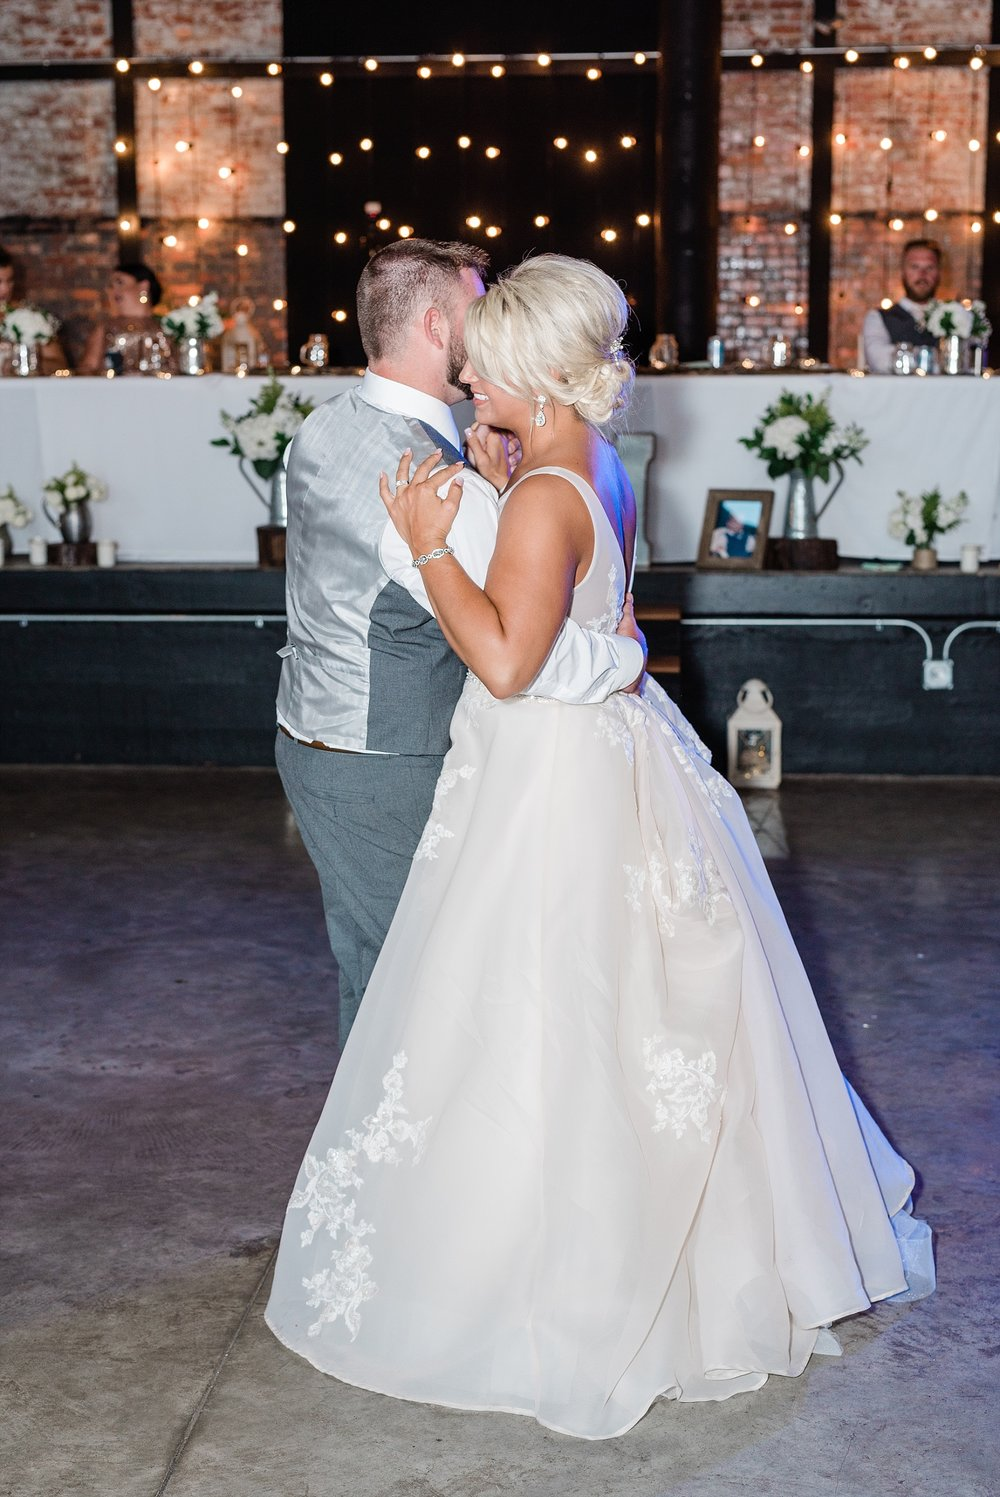 Rose Gold, White, and Greenery High Class Summer Wedding at The Millbottom in Downtown Jefferson City by Kelsi Kliethermes Photography_0049.jpg